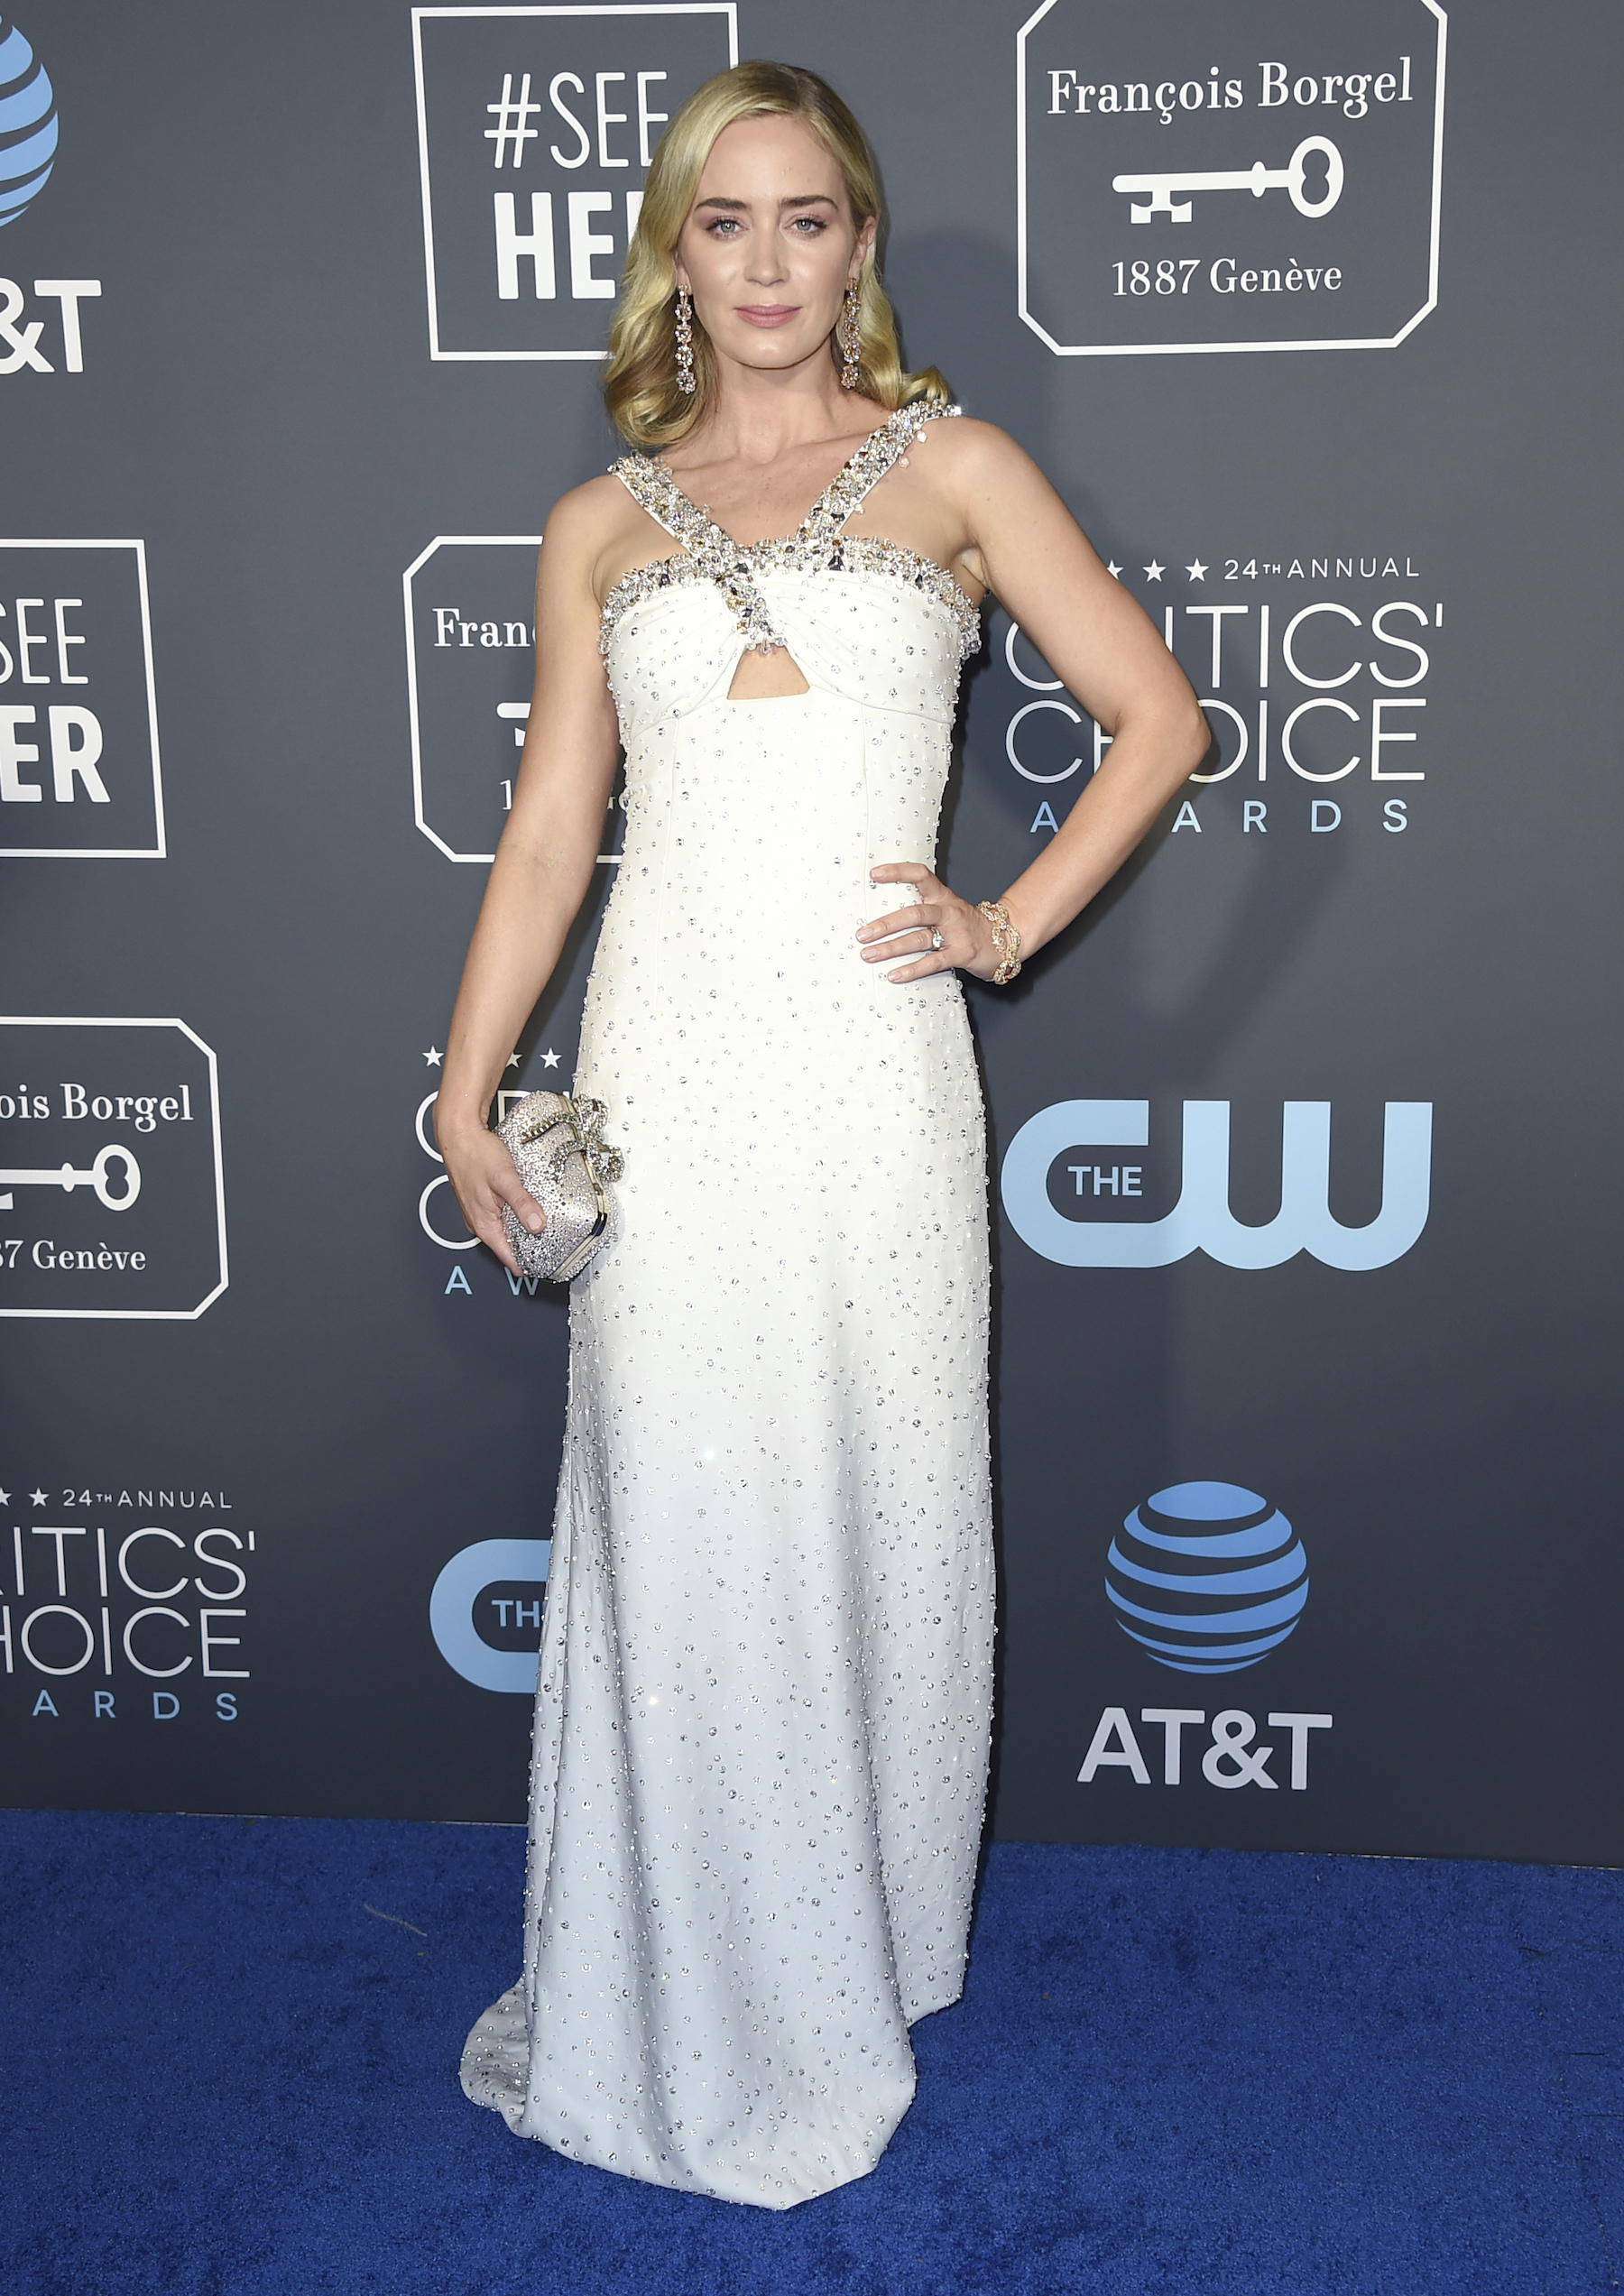 <div class='meta'><div class='origin-logo' data-origin='AP'></div><span class='caption-text' data-credit='Jordan Strauss/Invision/AP'>Emily Blunt arrives at the 24th annual Critics' Choice Awards on Sunday, Jan. 13, 2019, at the Barker Hangar in Santa Monica, Calif.</span></div>